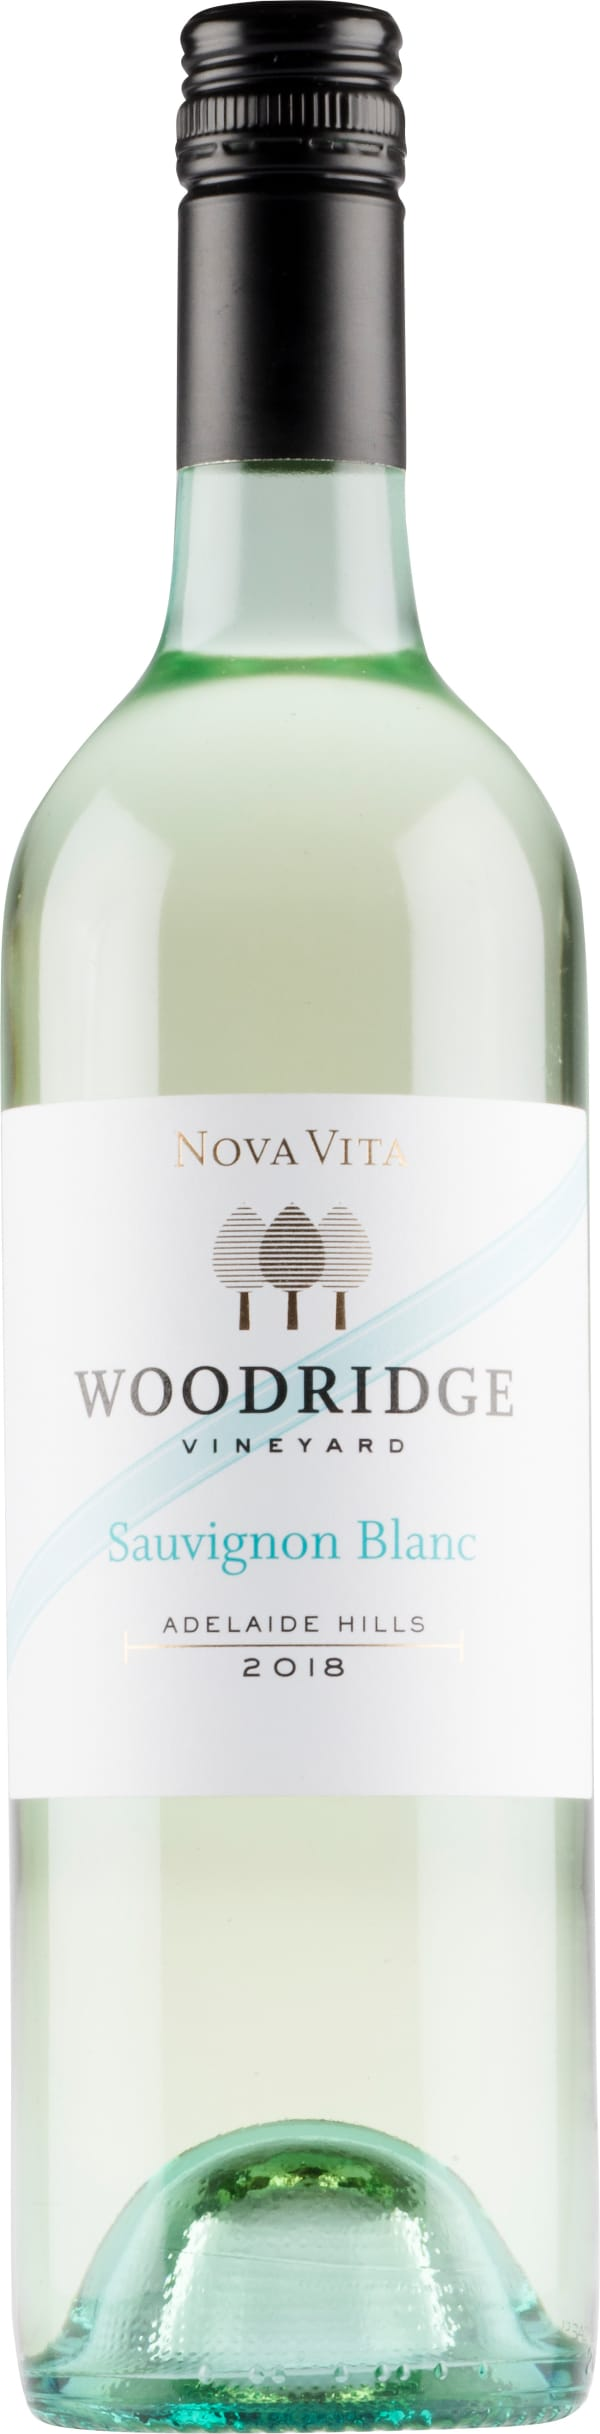 Woodridge Sauvignon Blanc 2018